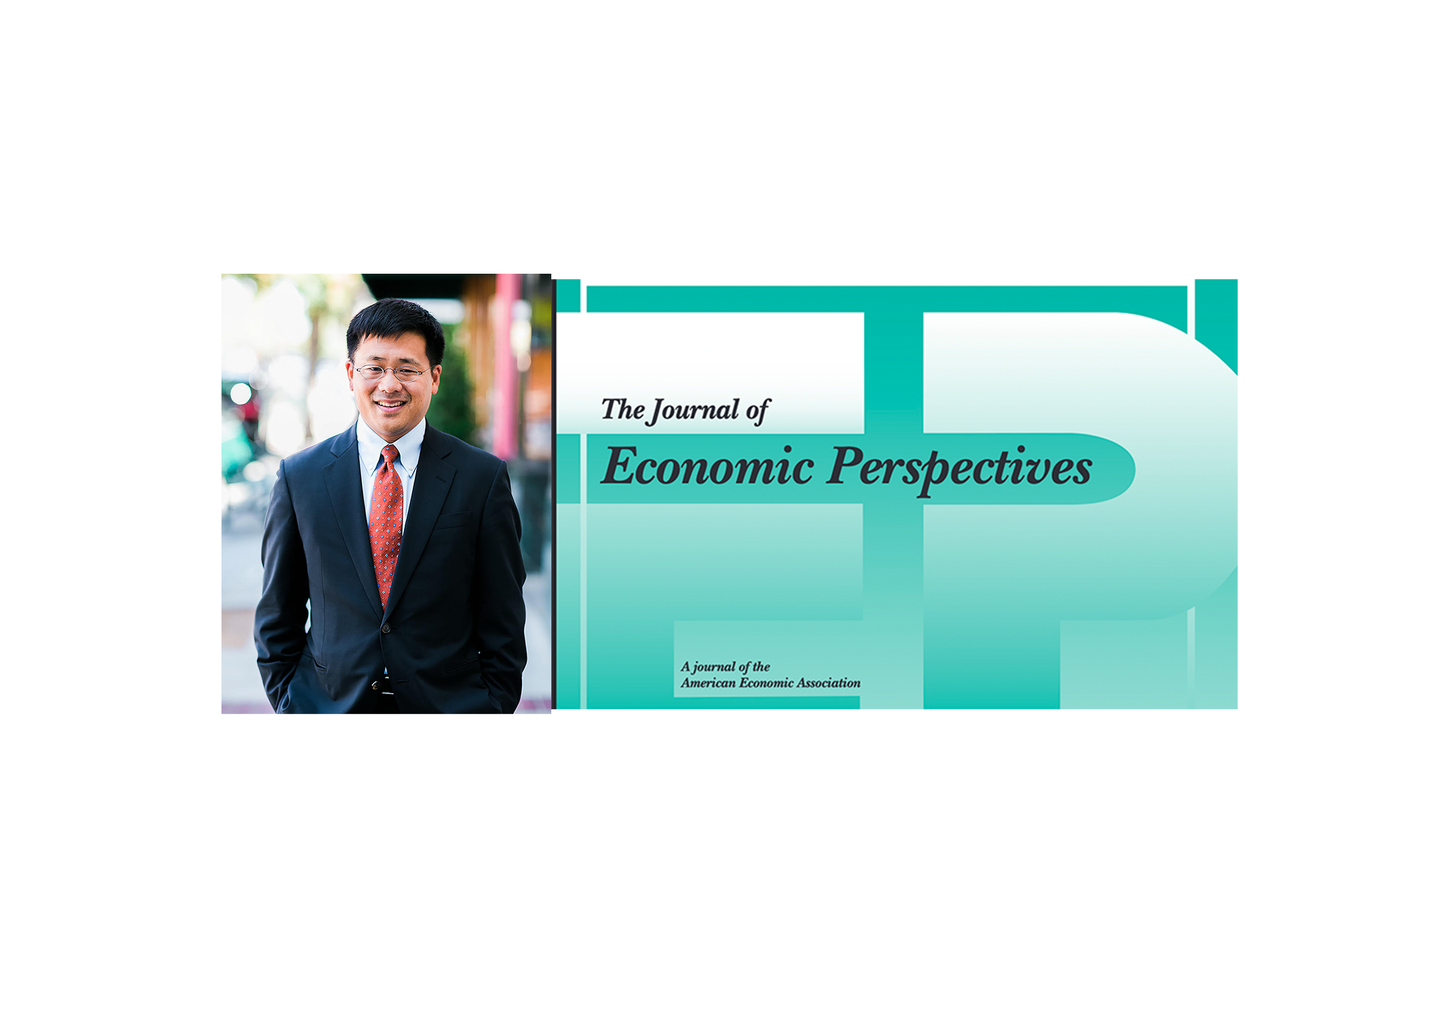 David Lee photo with image of Journal of Economic Perspectives cover